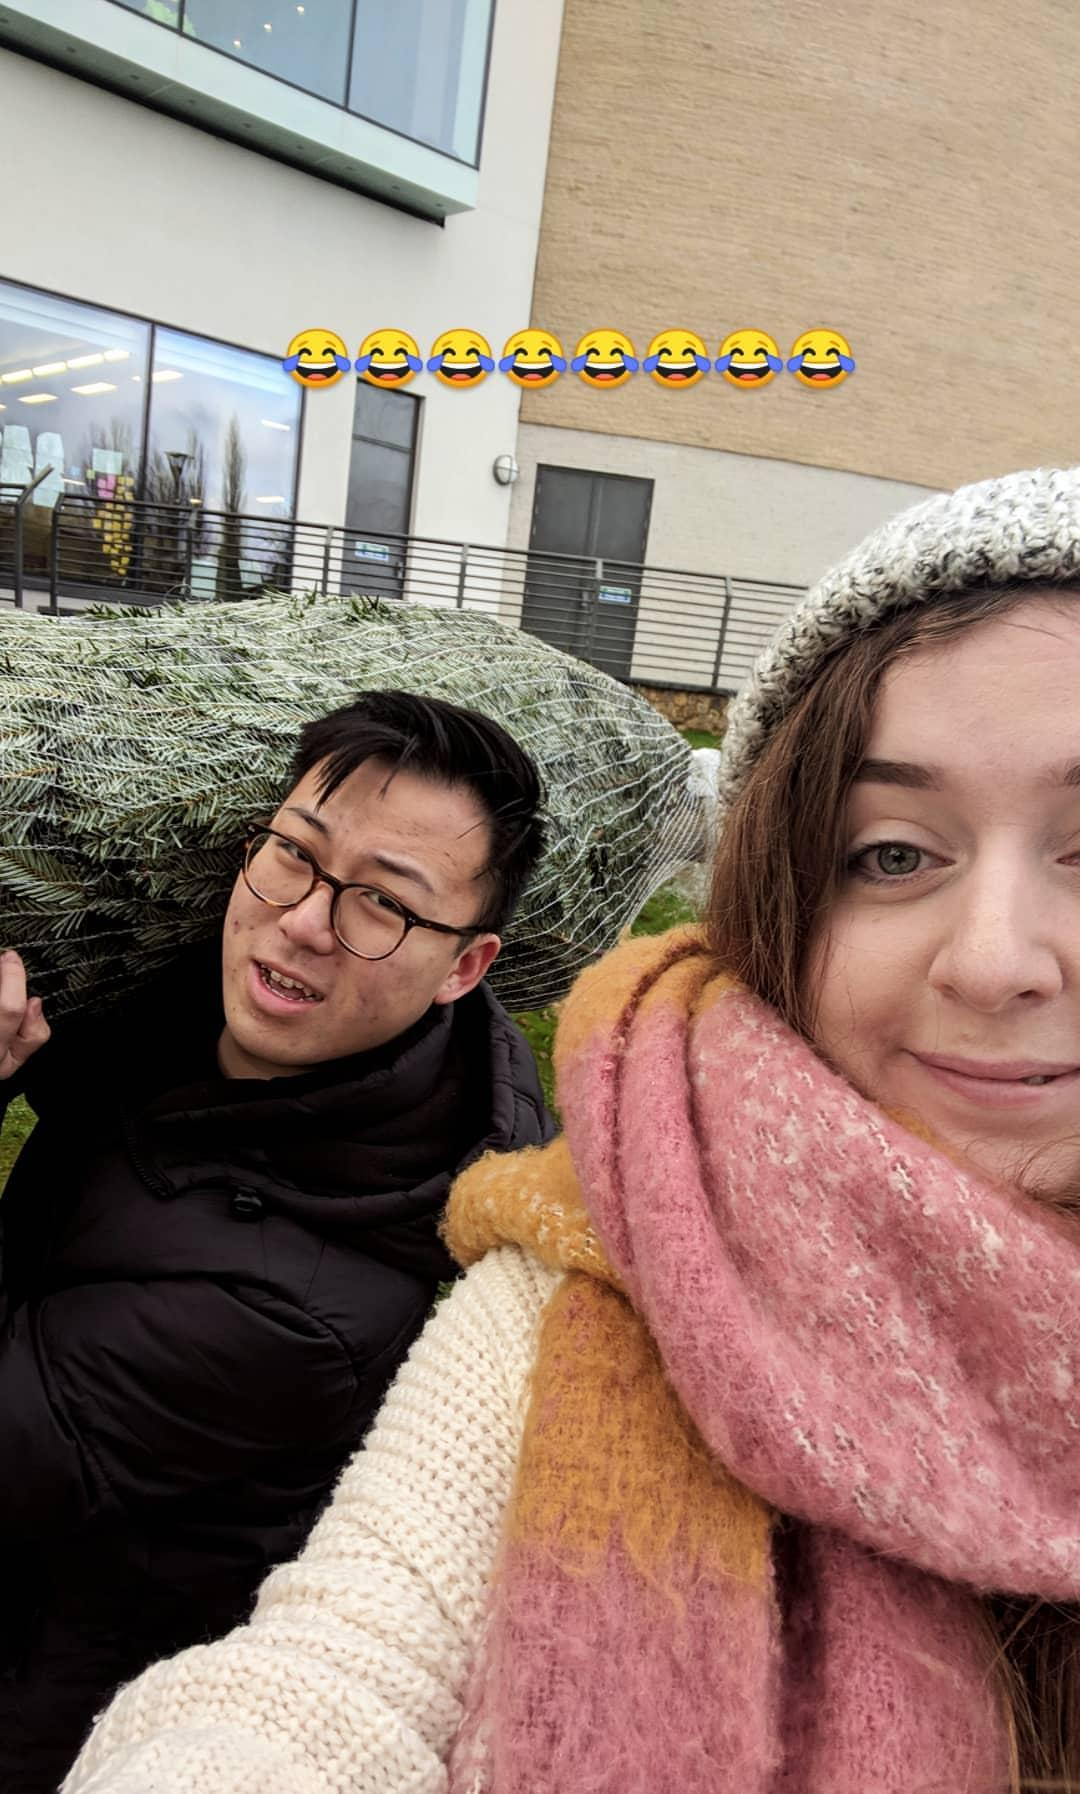 picking up the Christmas tree!